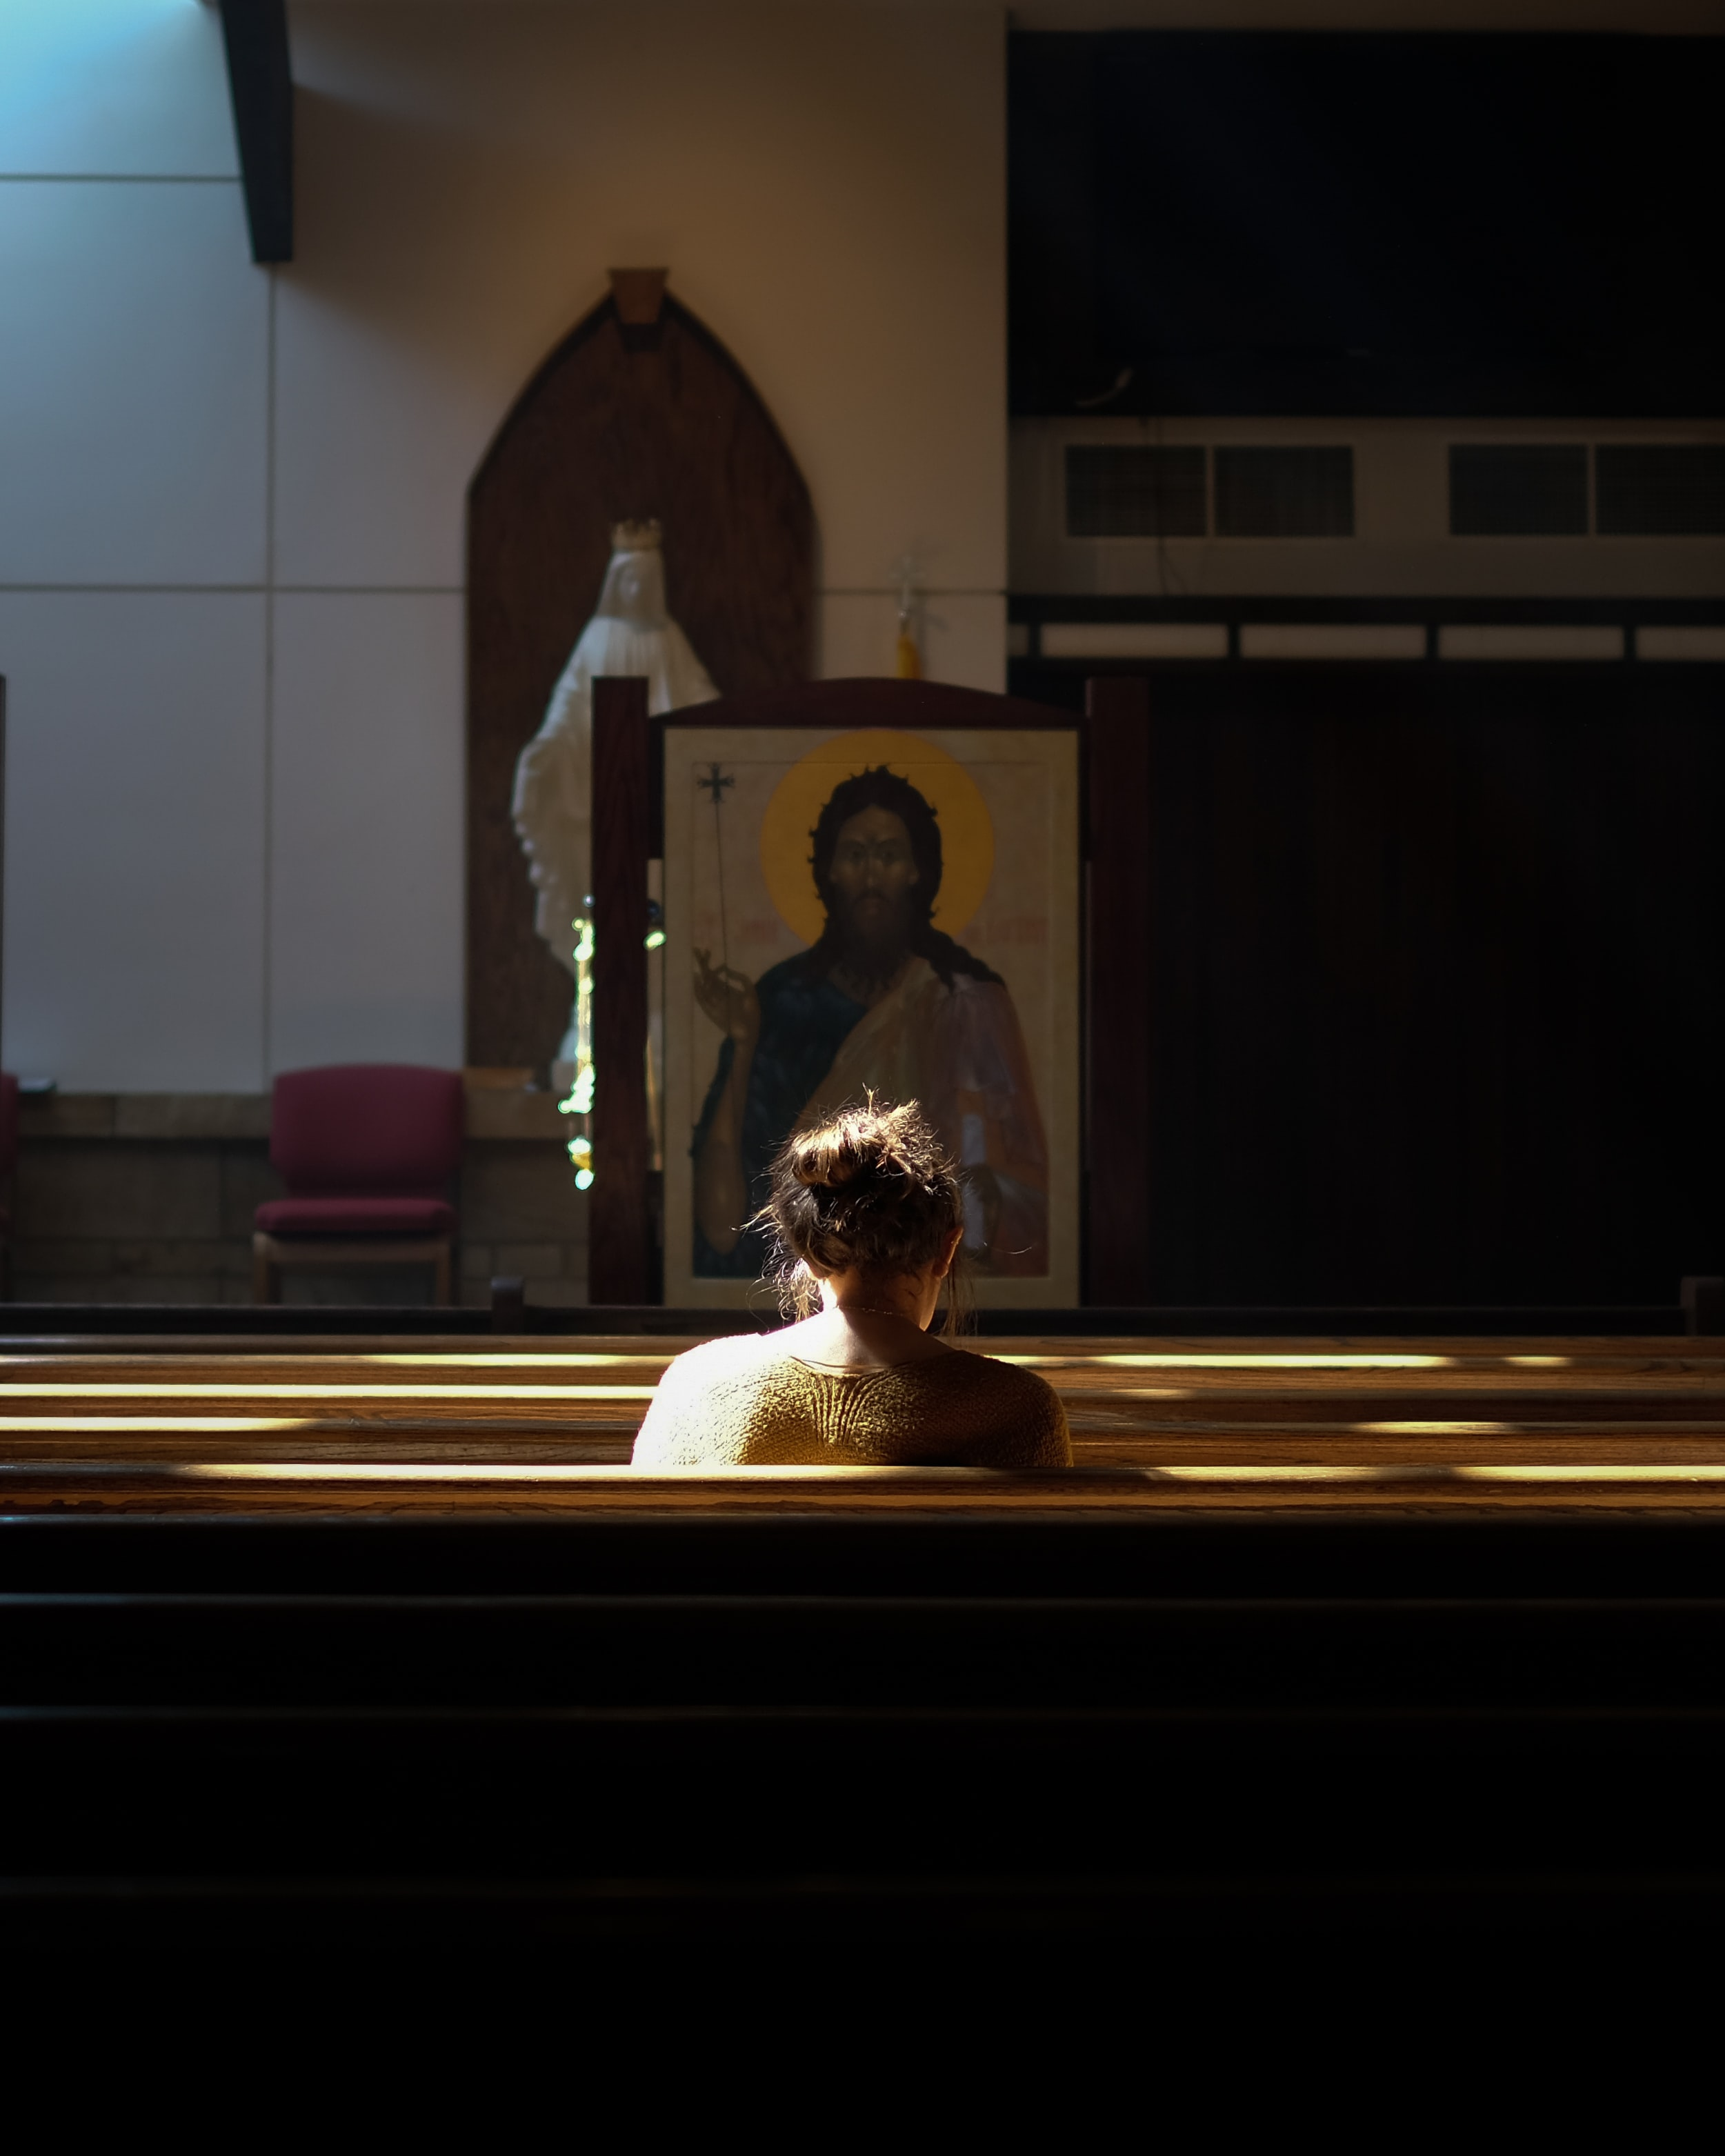 woman sitting on church pew during daytime